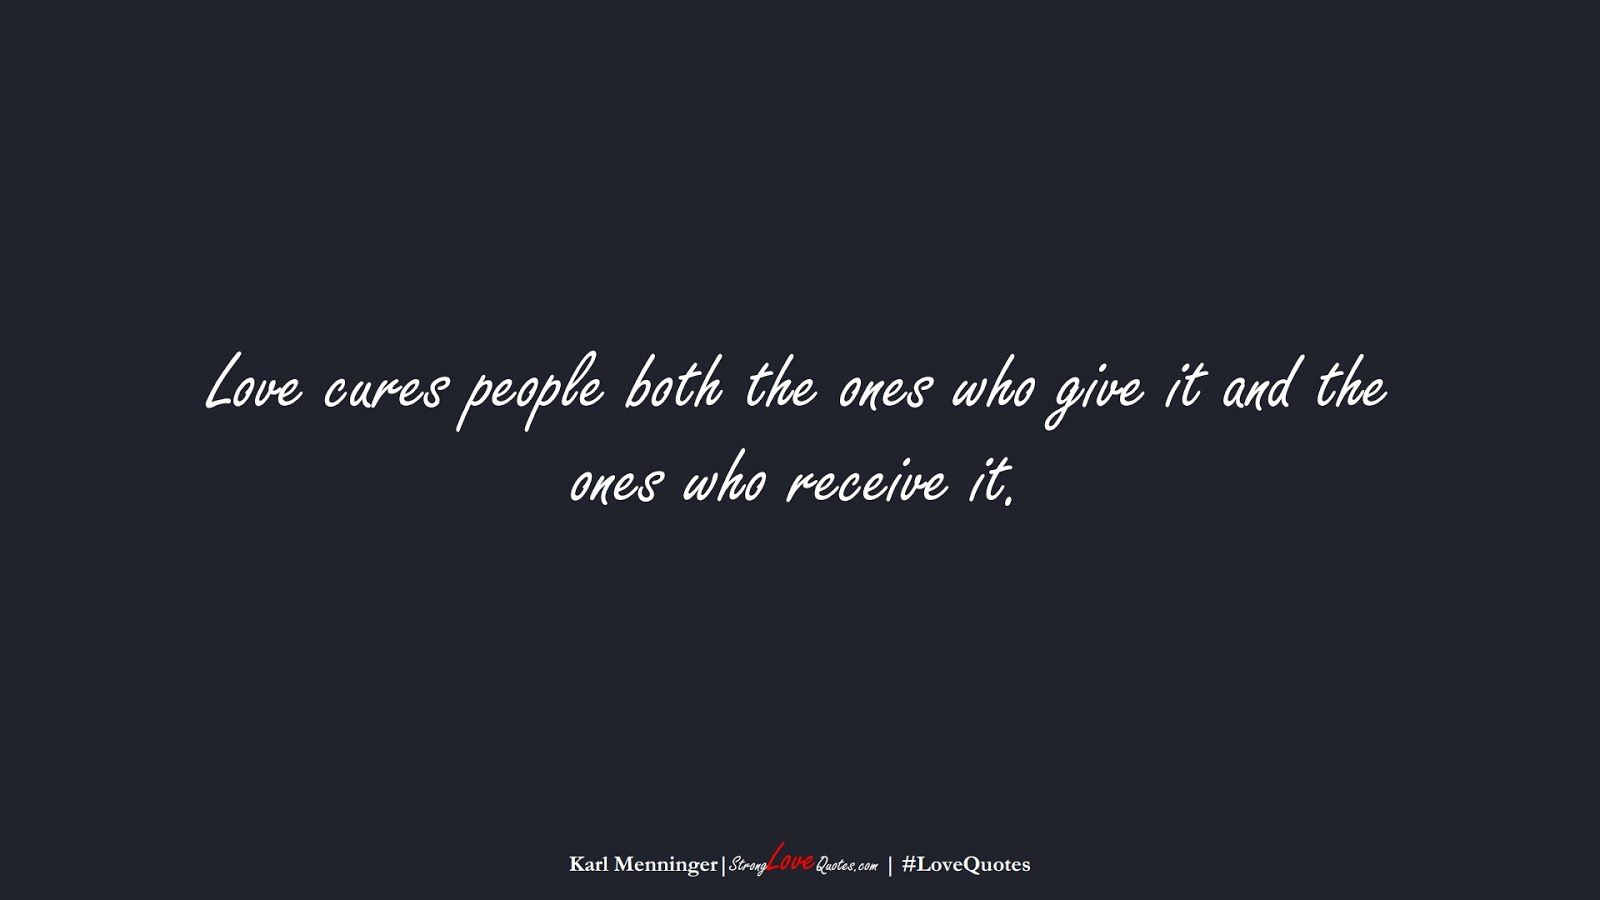 Love cures people both the ones who give it and the ones who receive it. (Karl Menninger);  #LoveQuotes